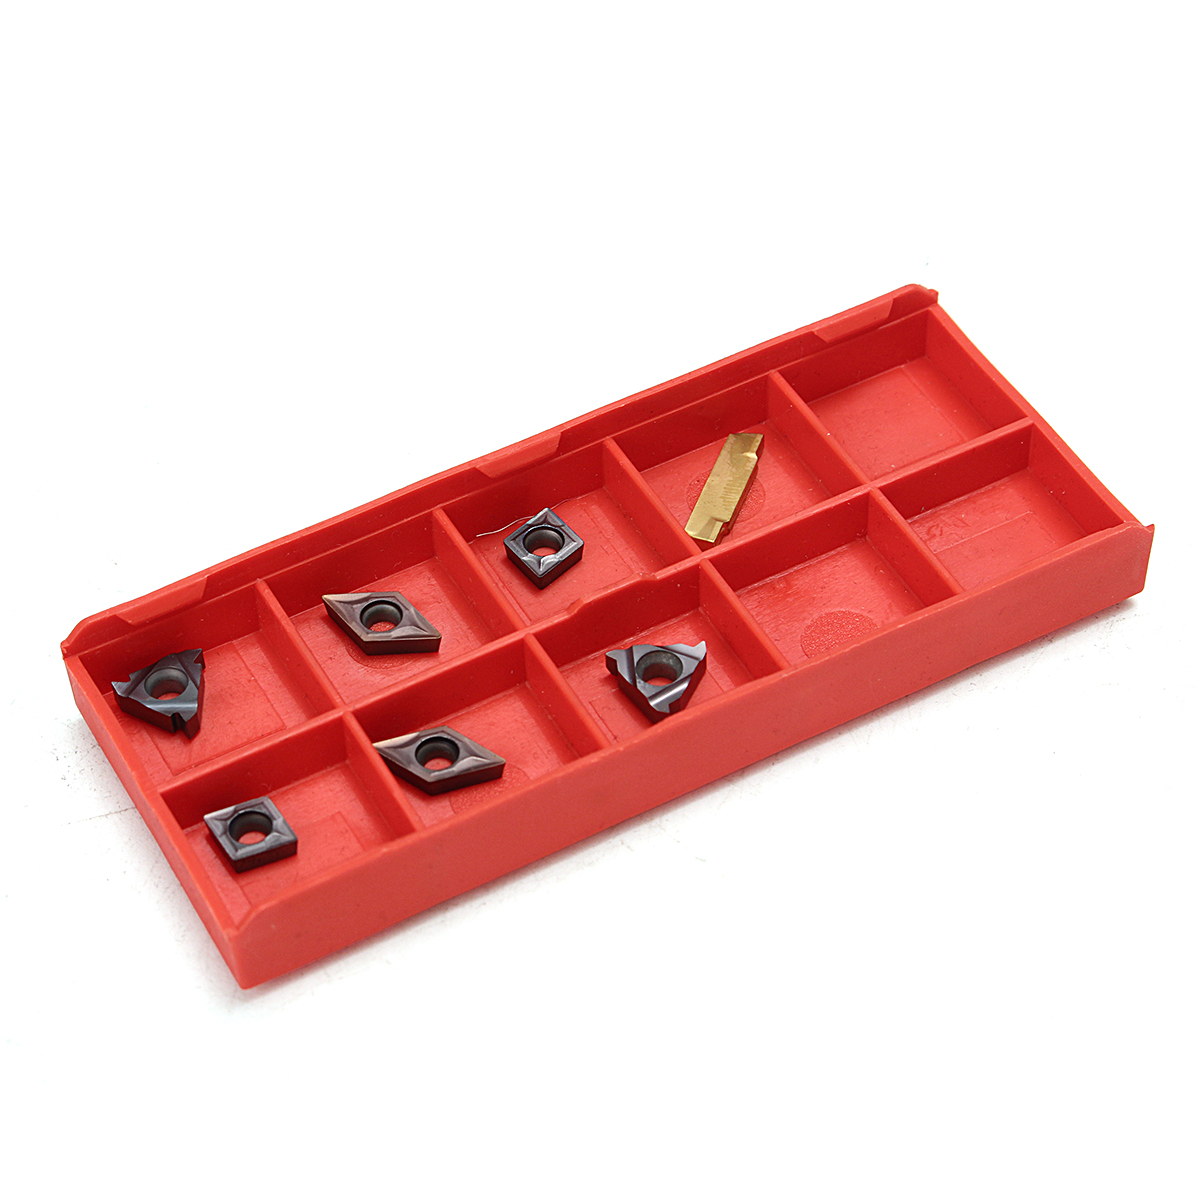 Wrench for Lathe Turning Tool 21pcs//Set Dcmt Ccmt Carbide Insert 10mm Boring Bar Tool Holder